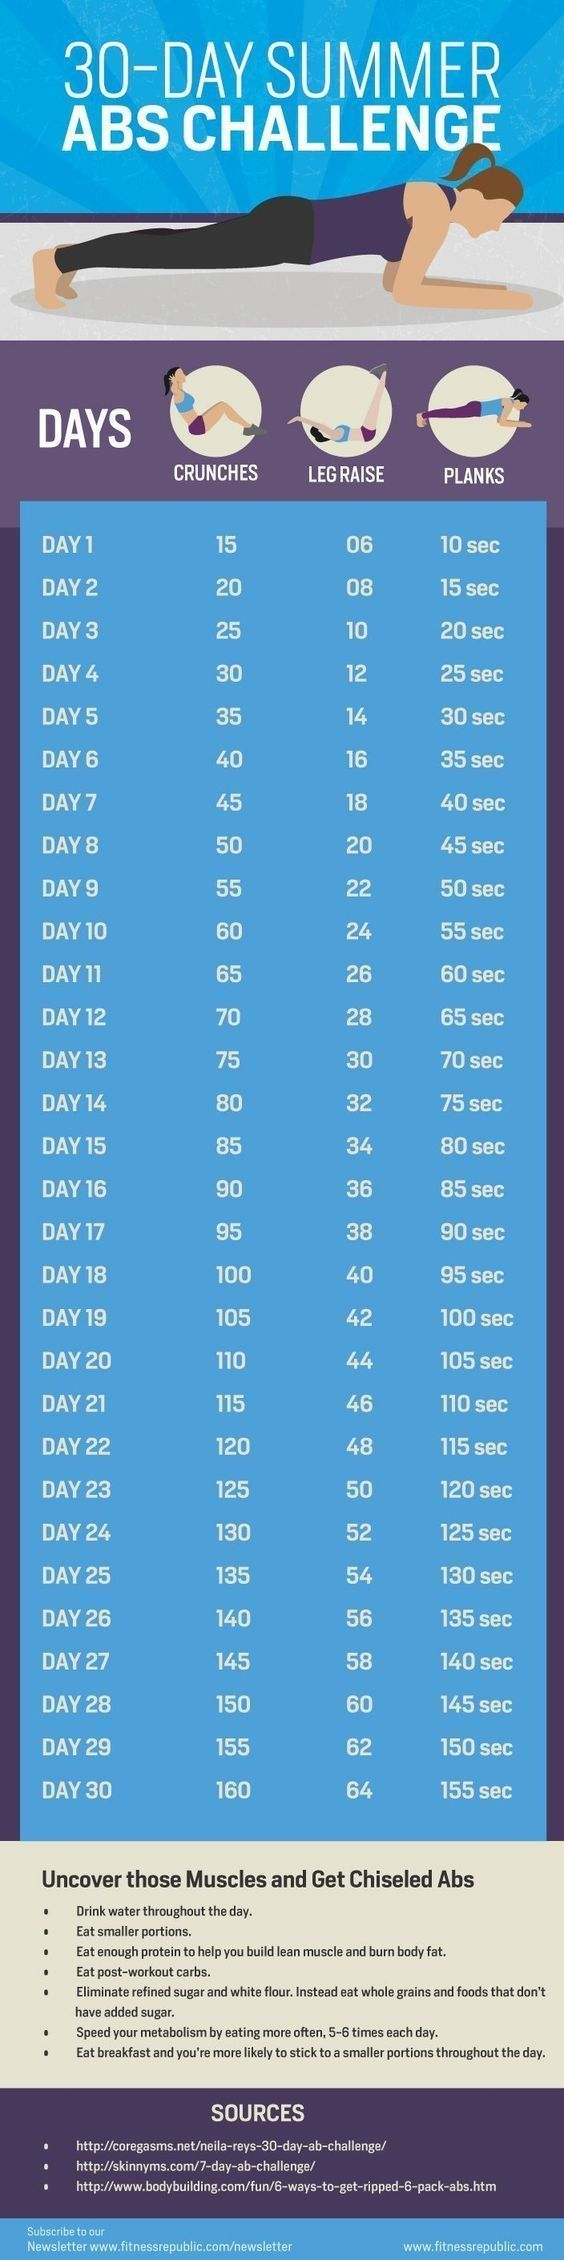 30-Day Summer Abs Challenge #fitness #abs #workout #weightloss